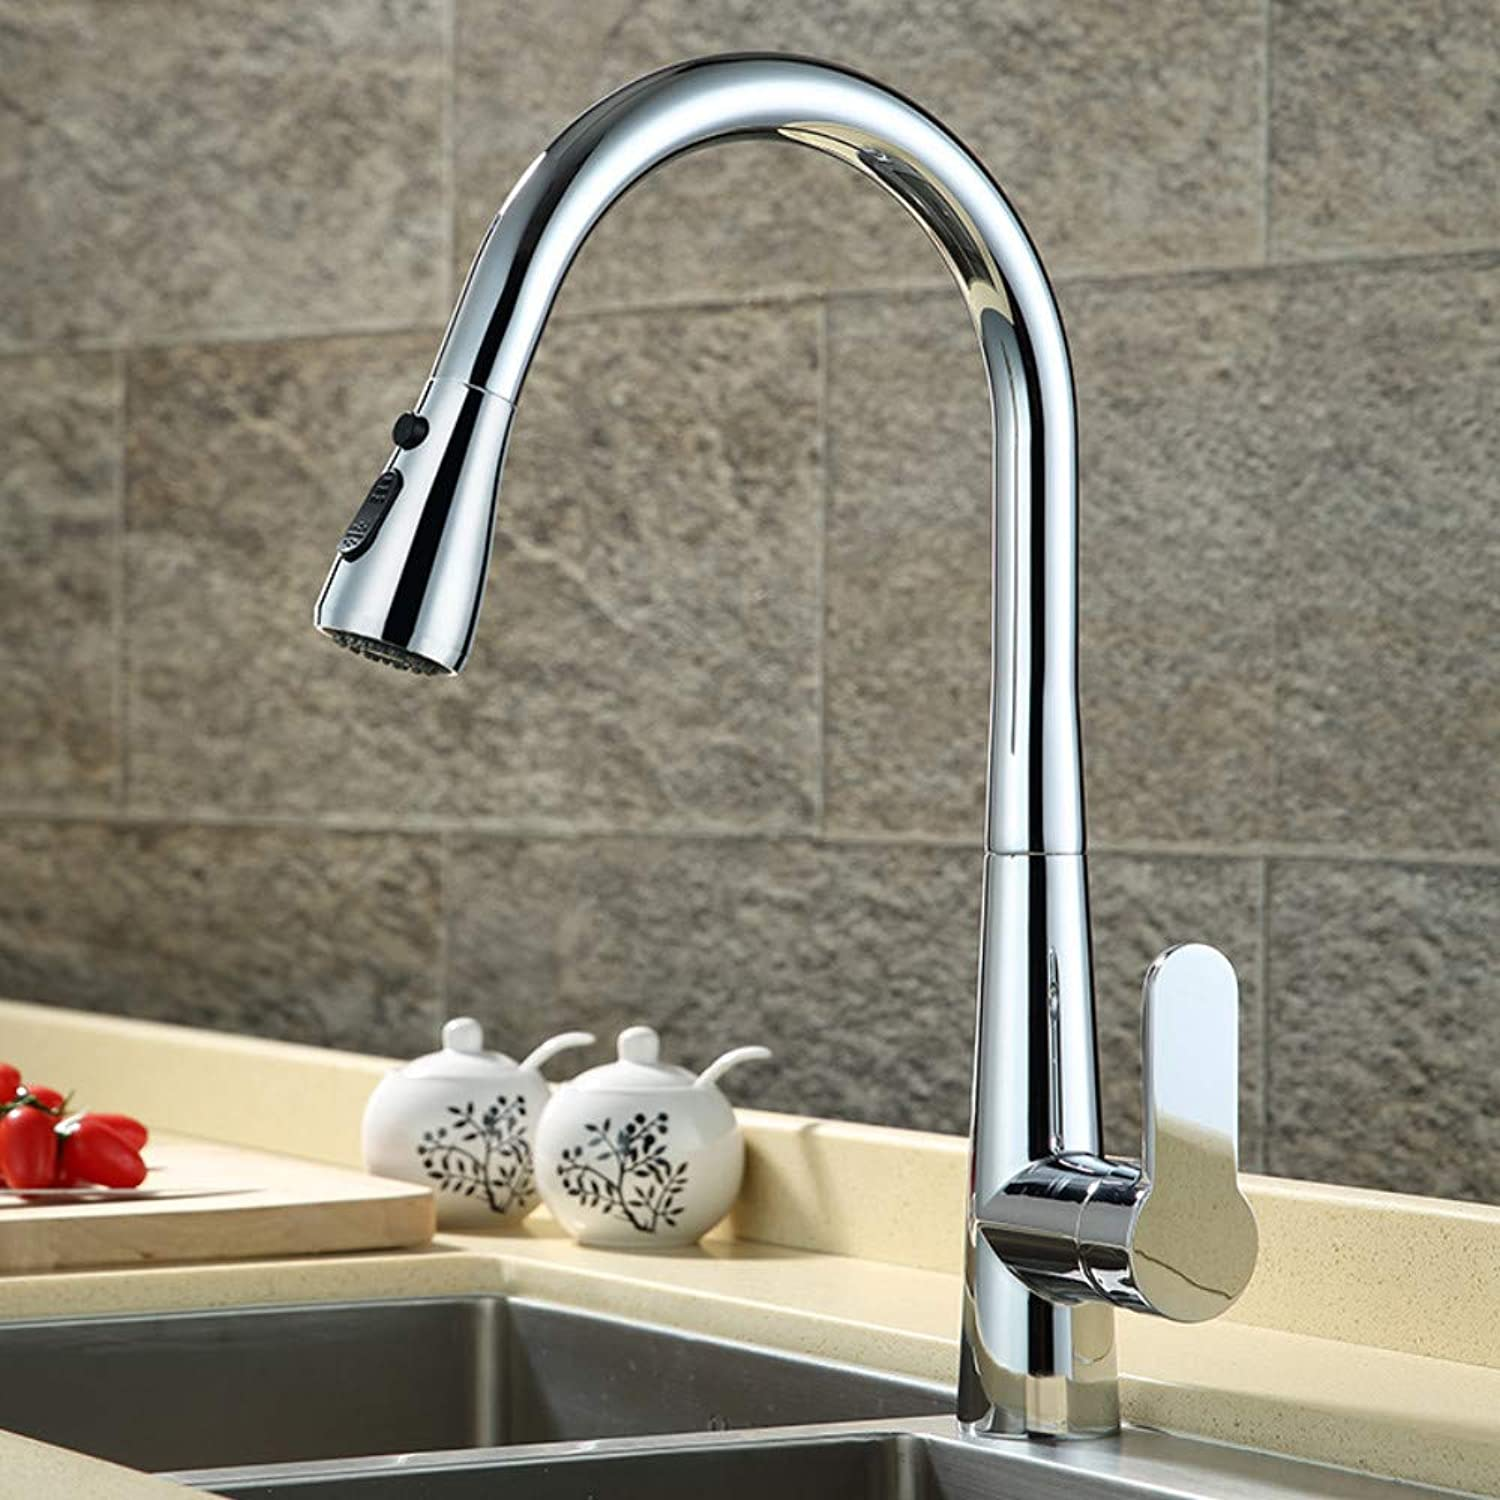 Kitchen Sink Sink redating Pull Type One Button Water Stop Hot and Cold Copper Faucet B Chrome